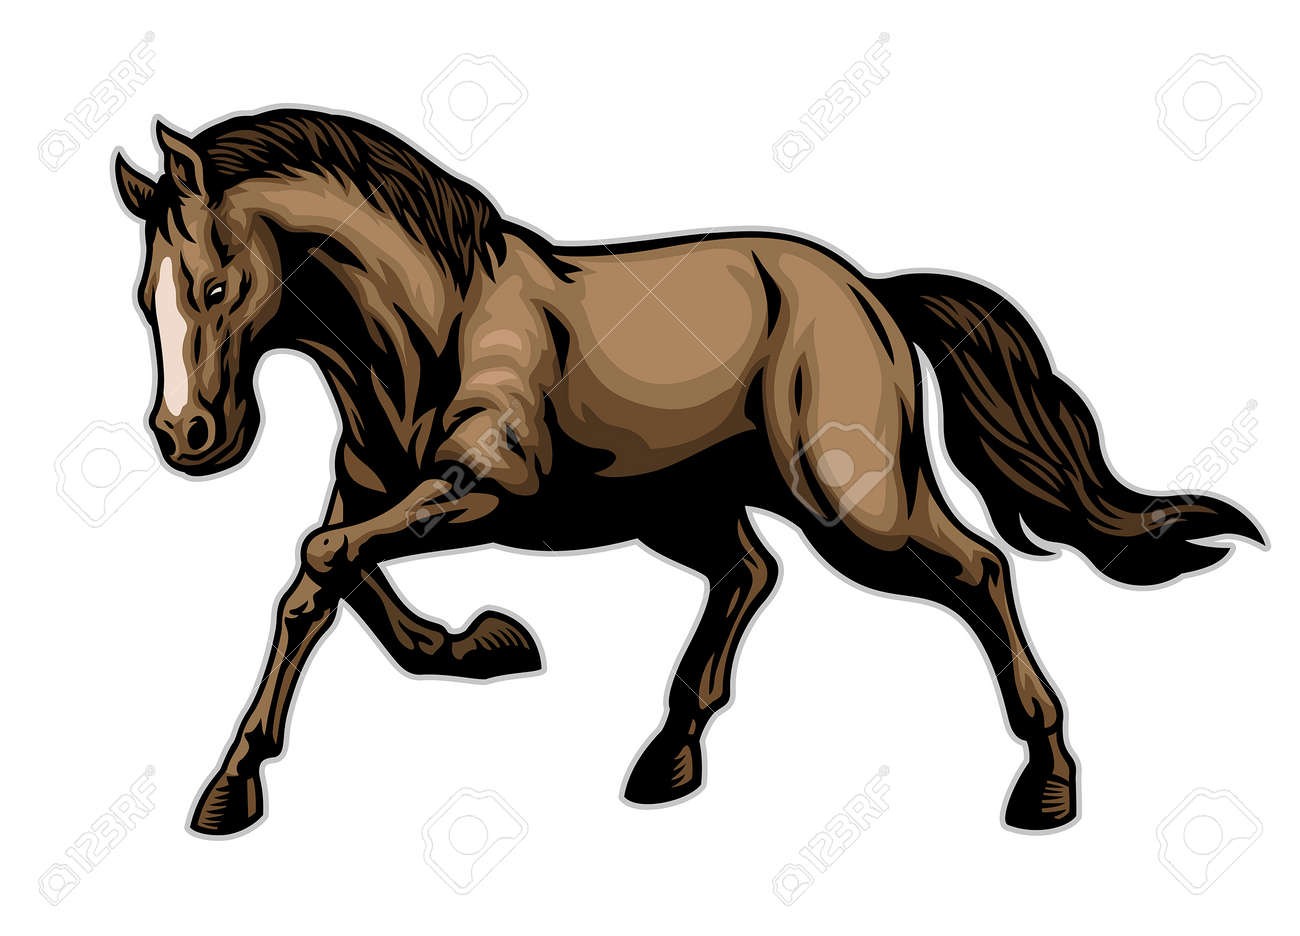 vector of brown horse in hand drawn style - 165300920